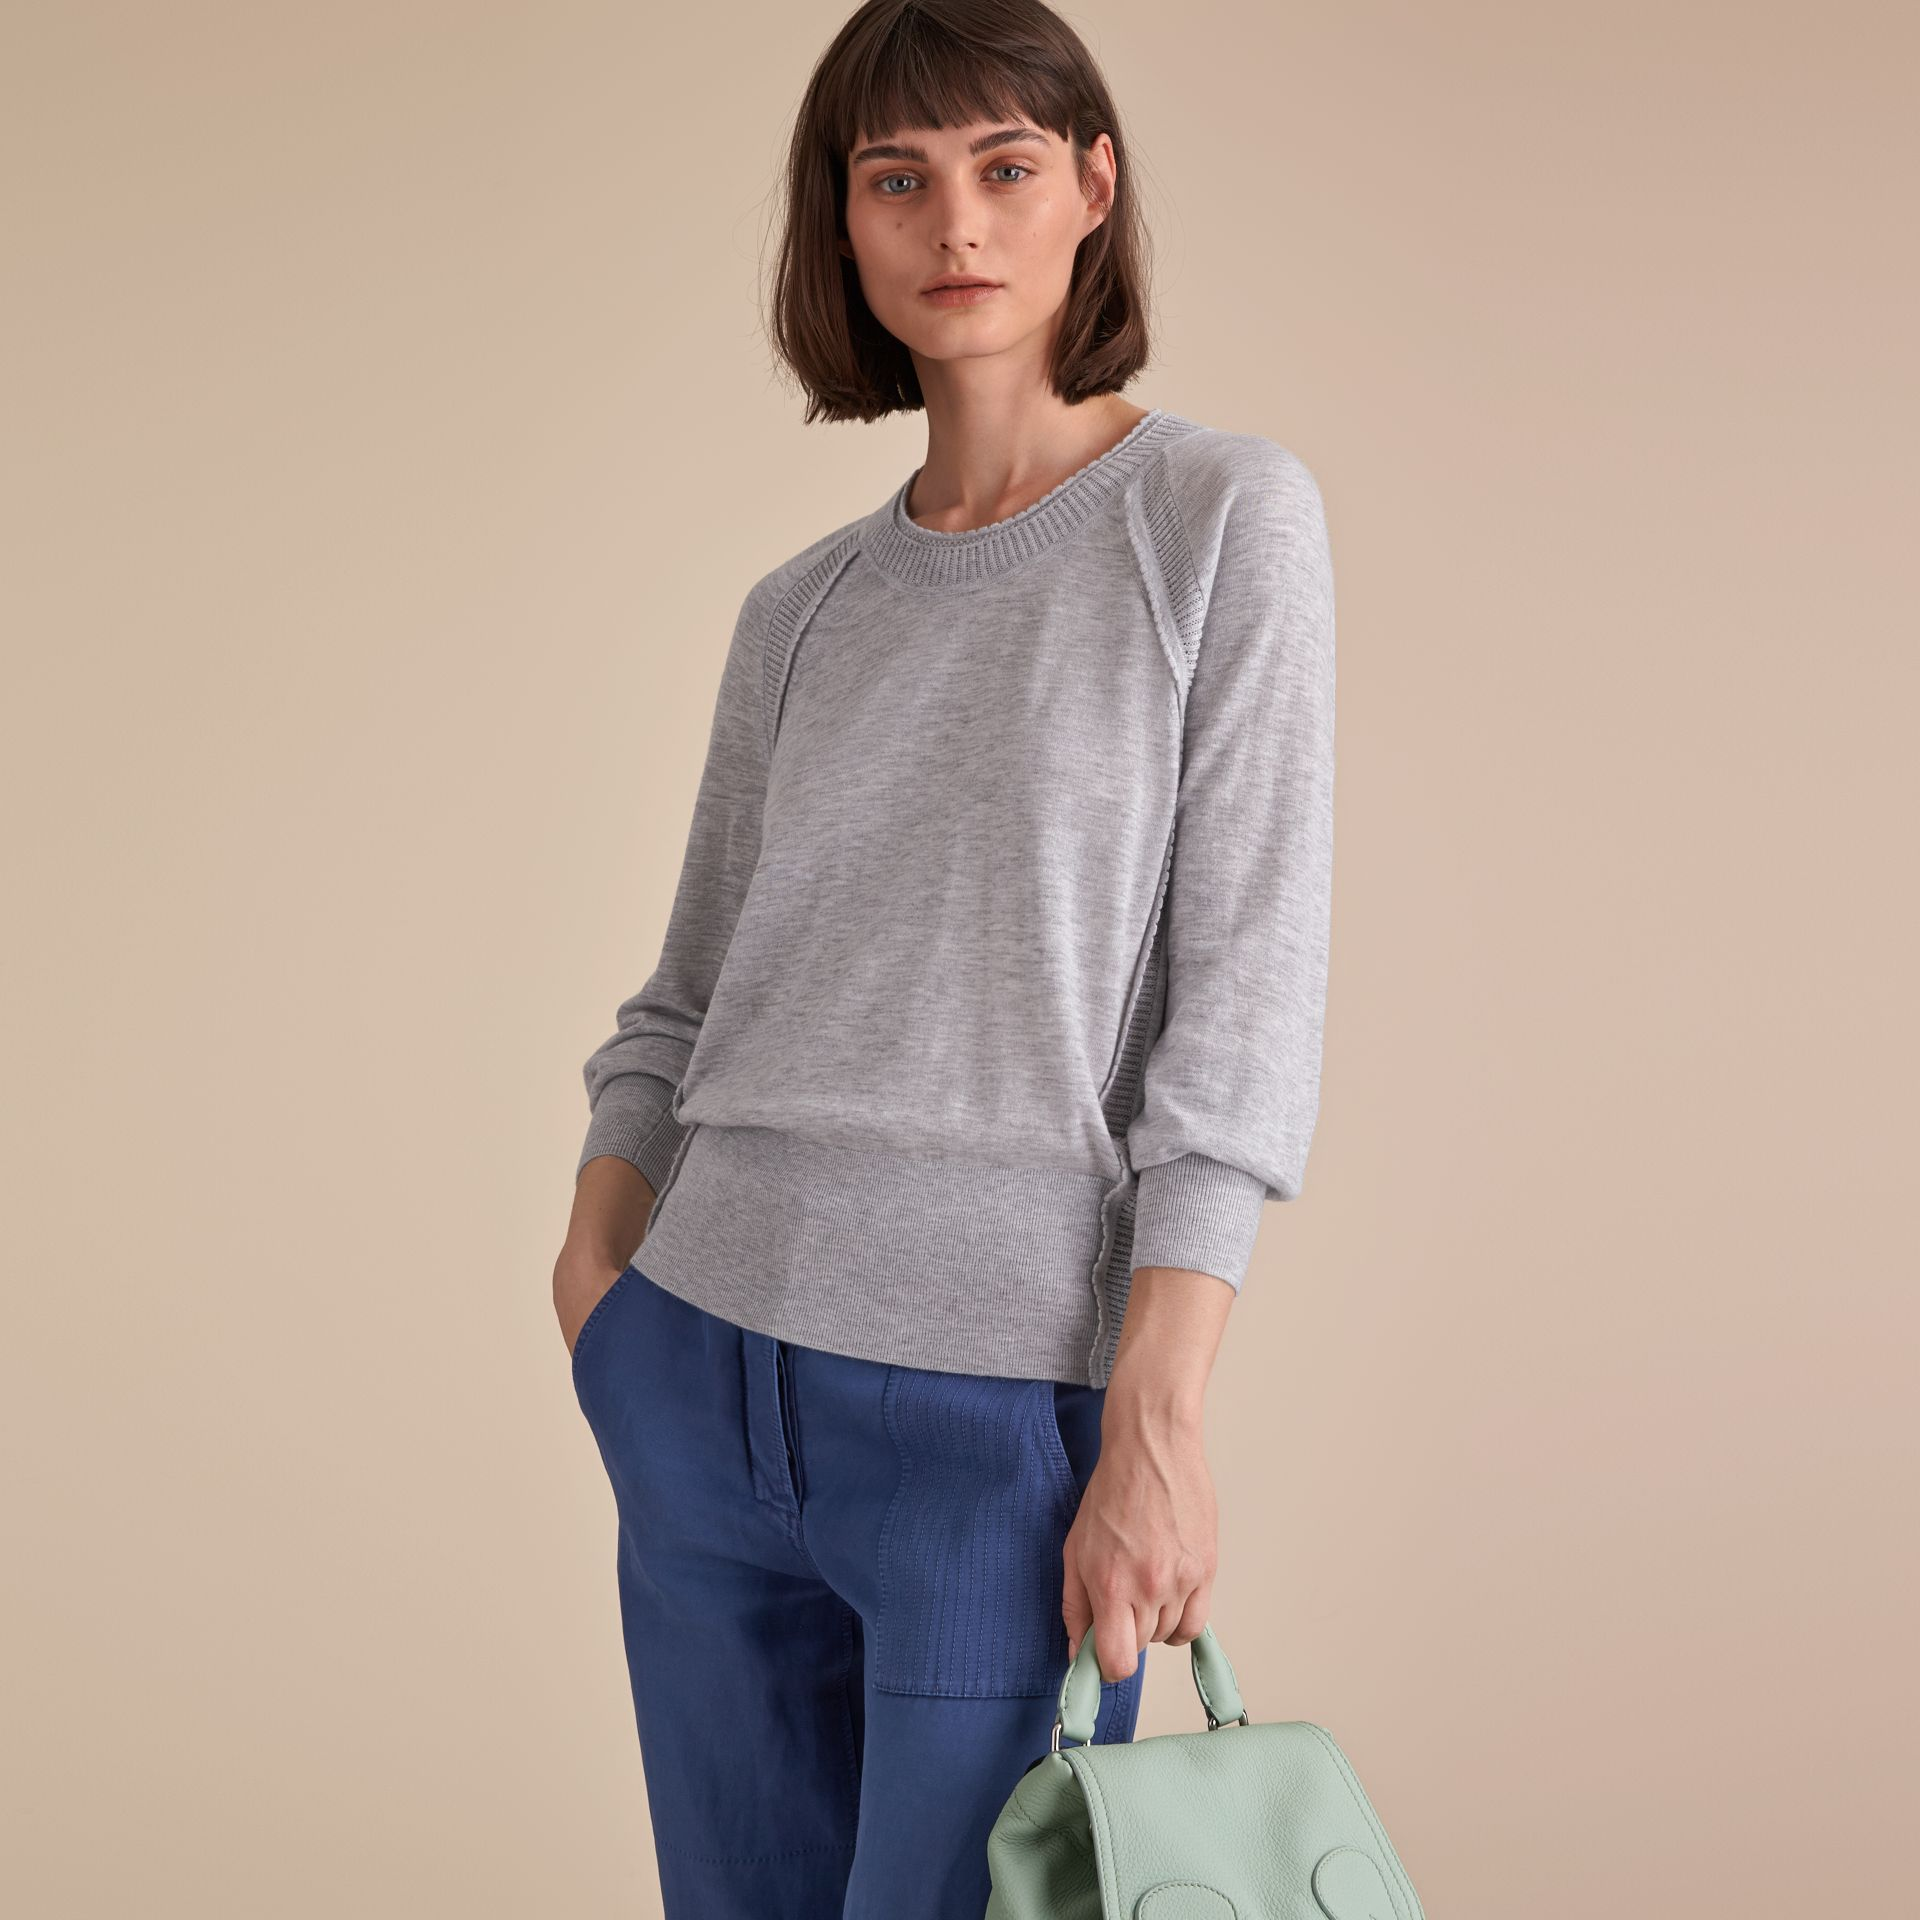 Open-knit Detail Cashmere Crew Neck Sweater in Light Grey Melange - Women | Burberry Singapore - gallery image 6